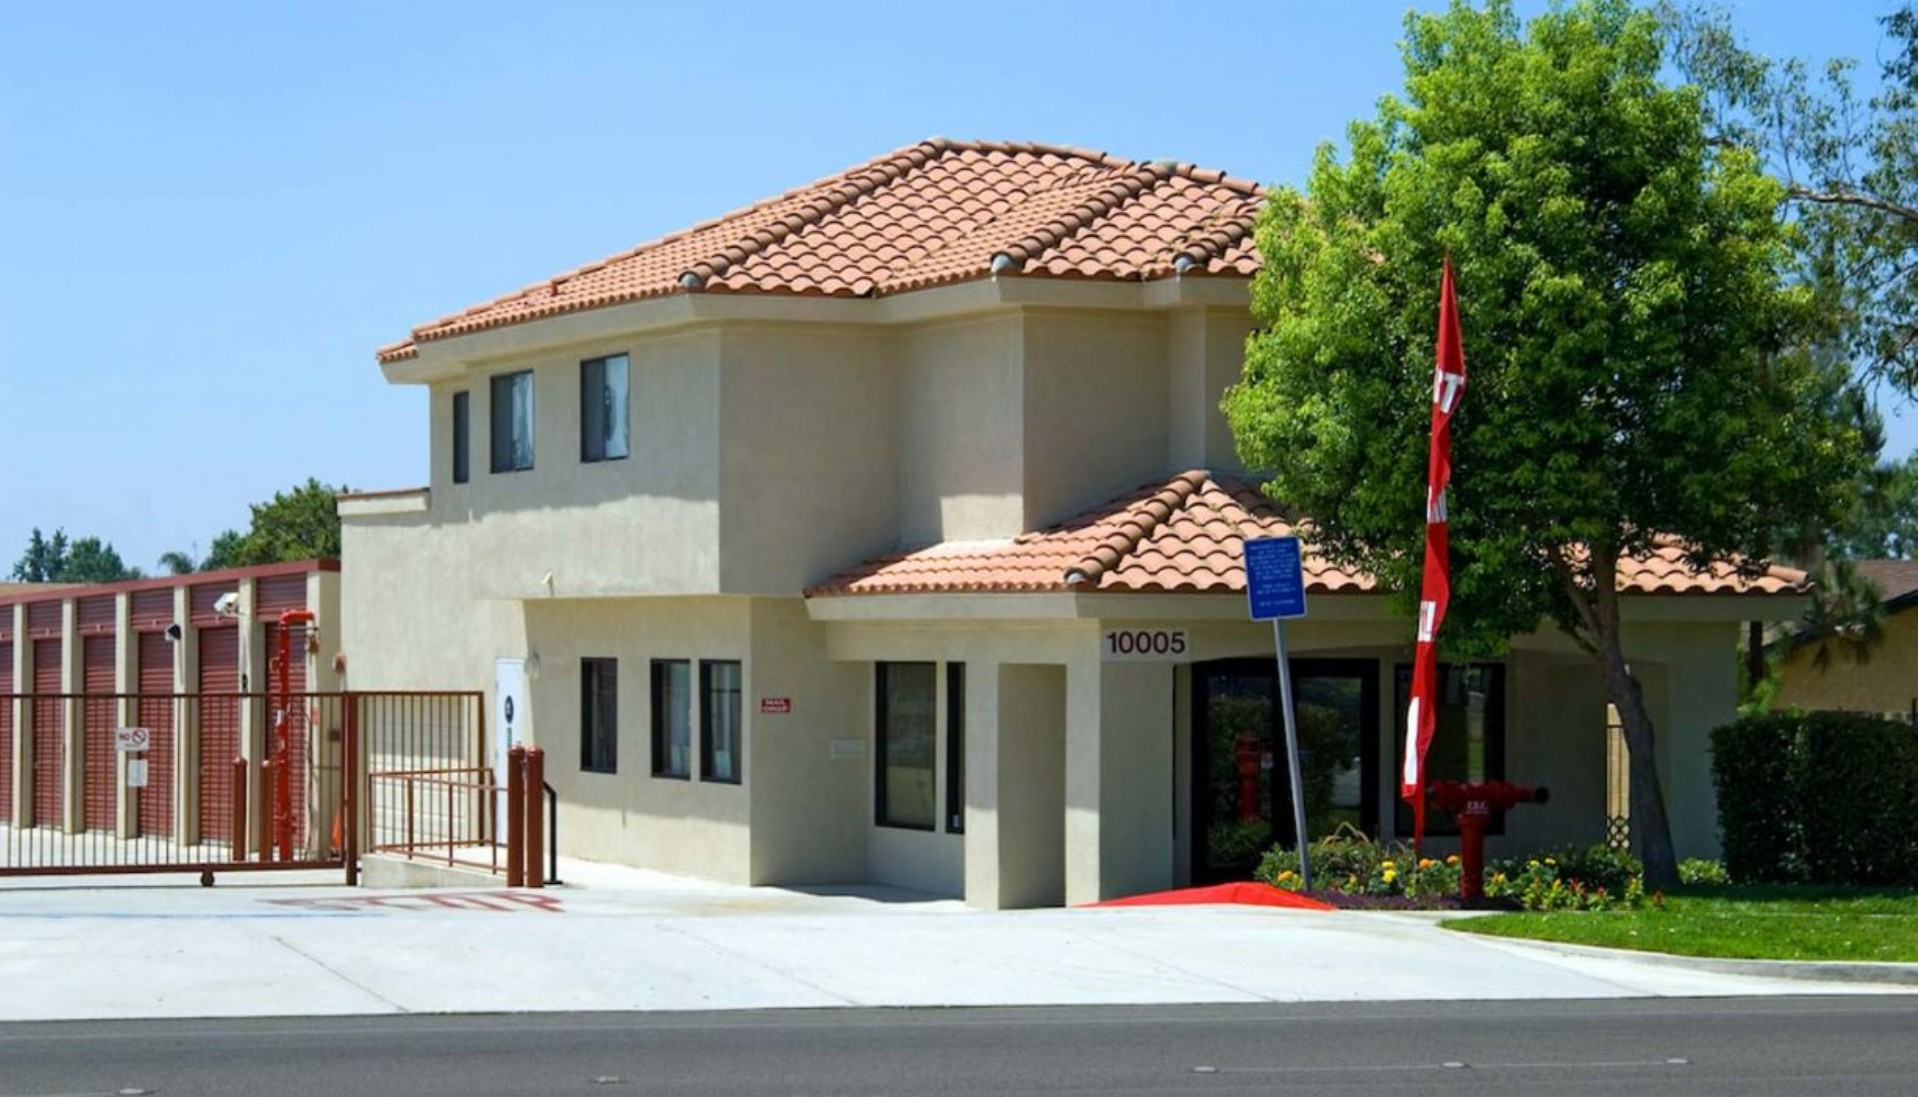 Price Self Storage Rancho Cucamonga Arrow Route rental office street view